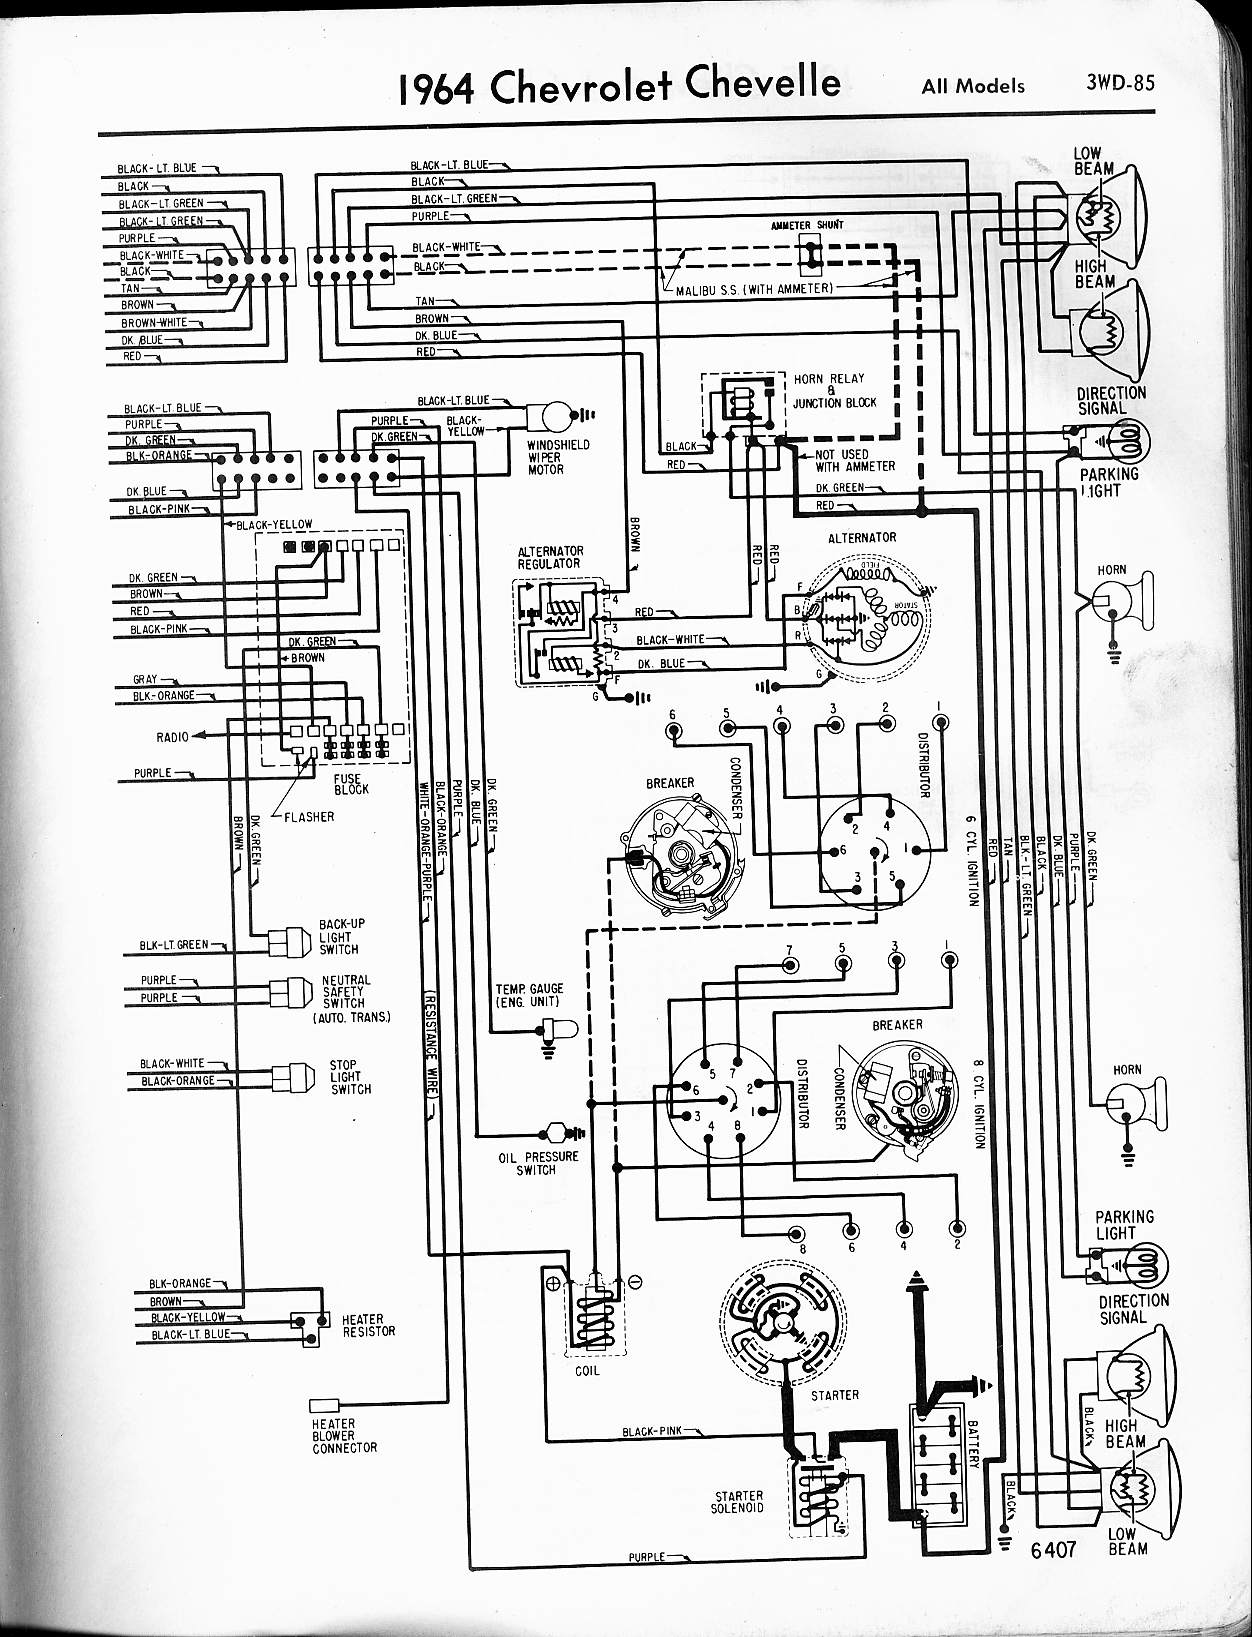 hight resolution of 1968 chevelle wiring harness diagram wiring diagram todaysdownloadable 64 chevelle wiring schematic wiring diagrams 1967 chevelle